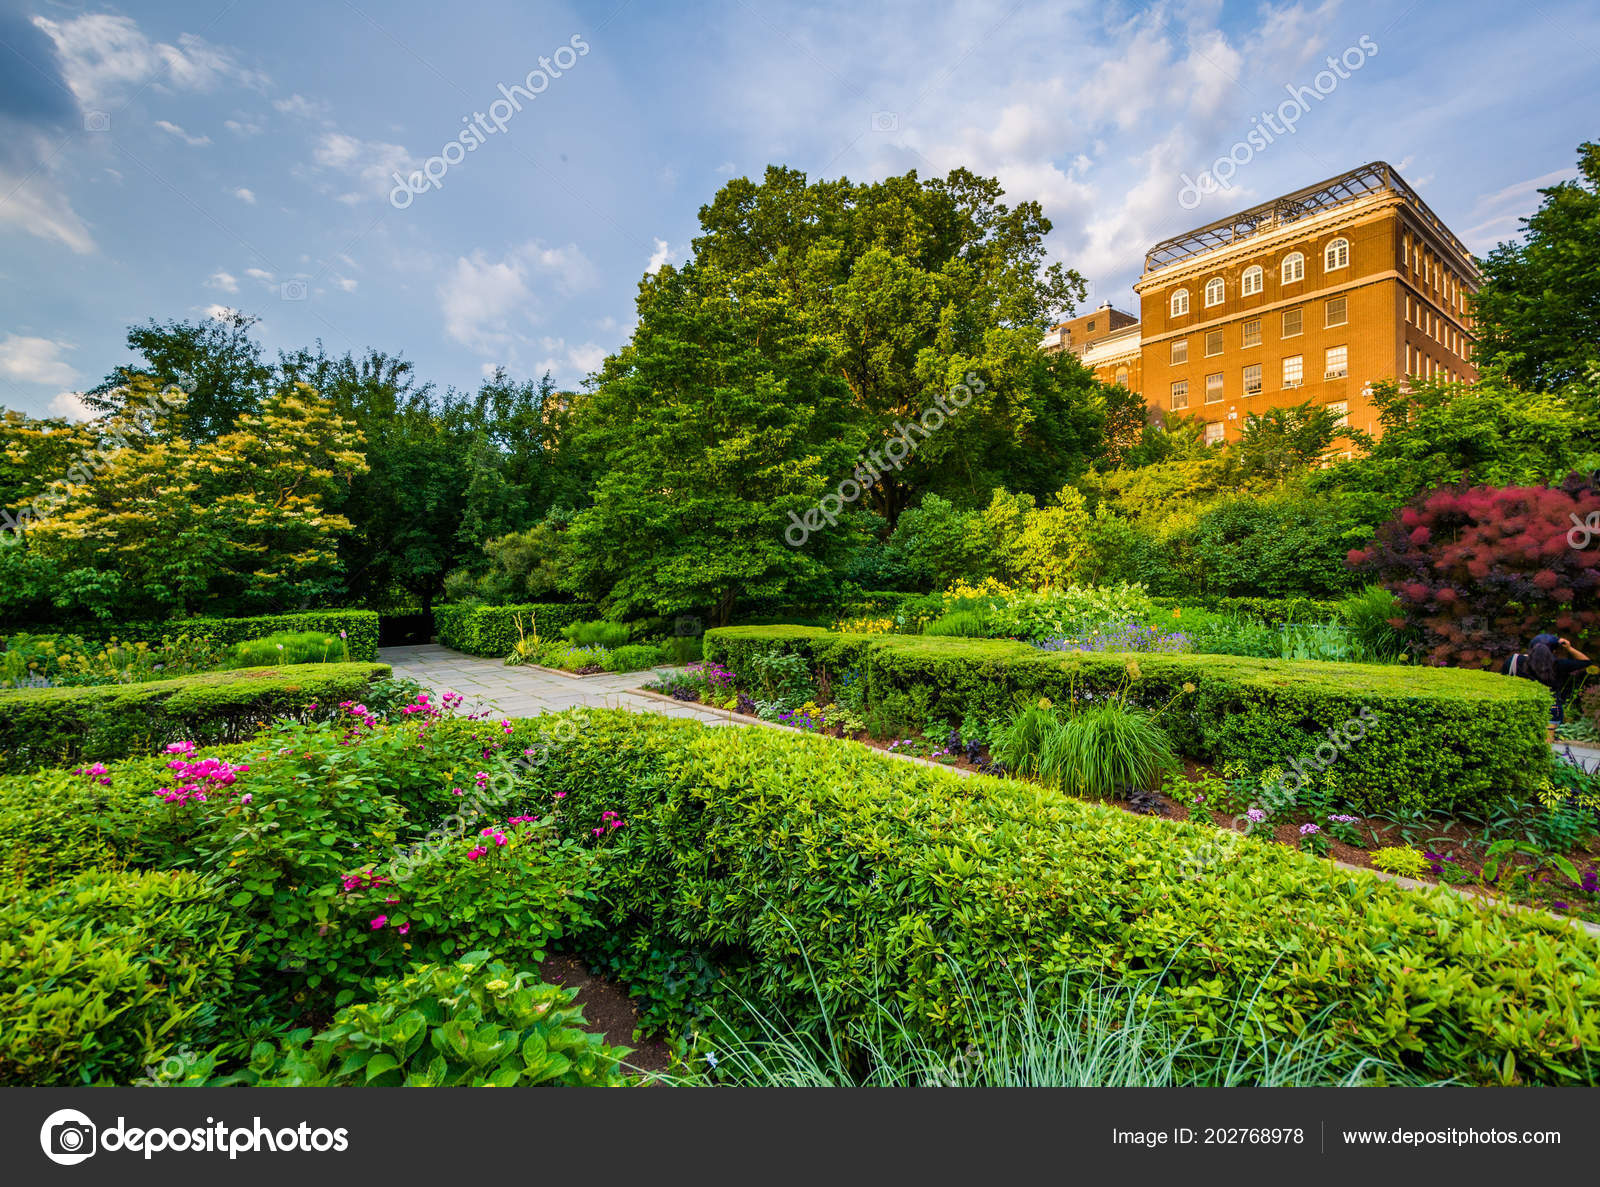 conservatory garden central park manhattan new york city stock photo - Central Park Conservatory Garden